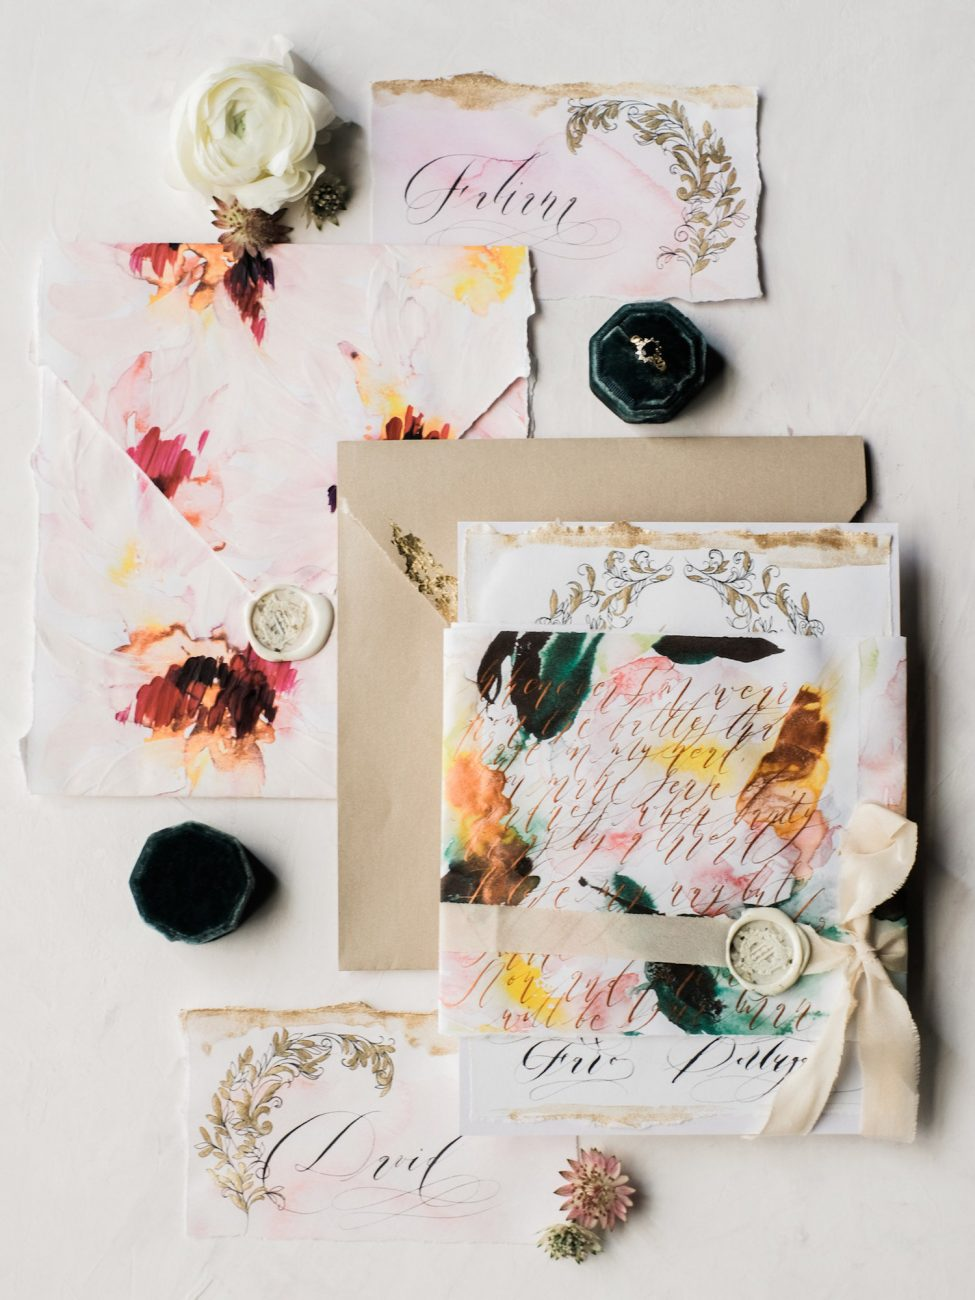 Palace Wedding Inspiration - hand painted wedding invitations